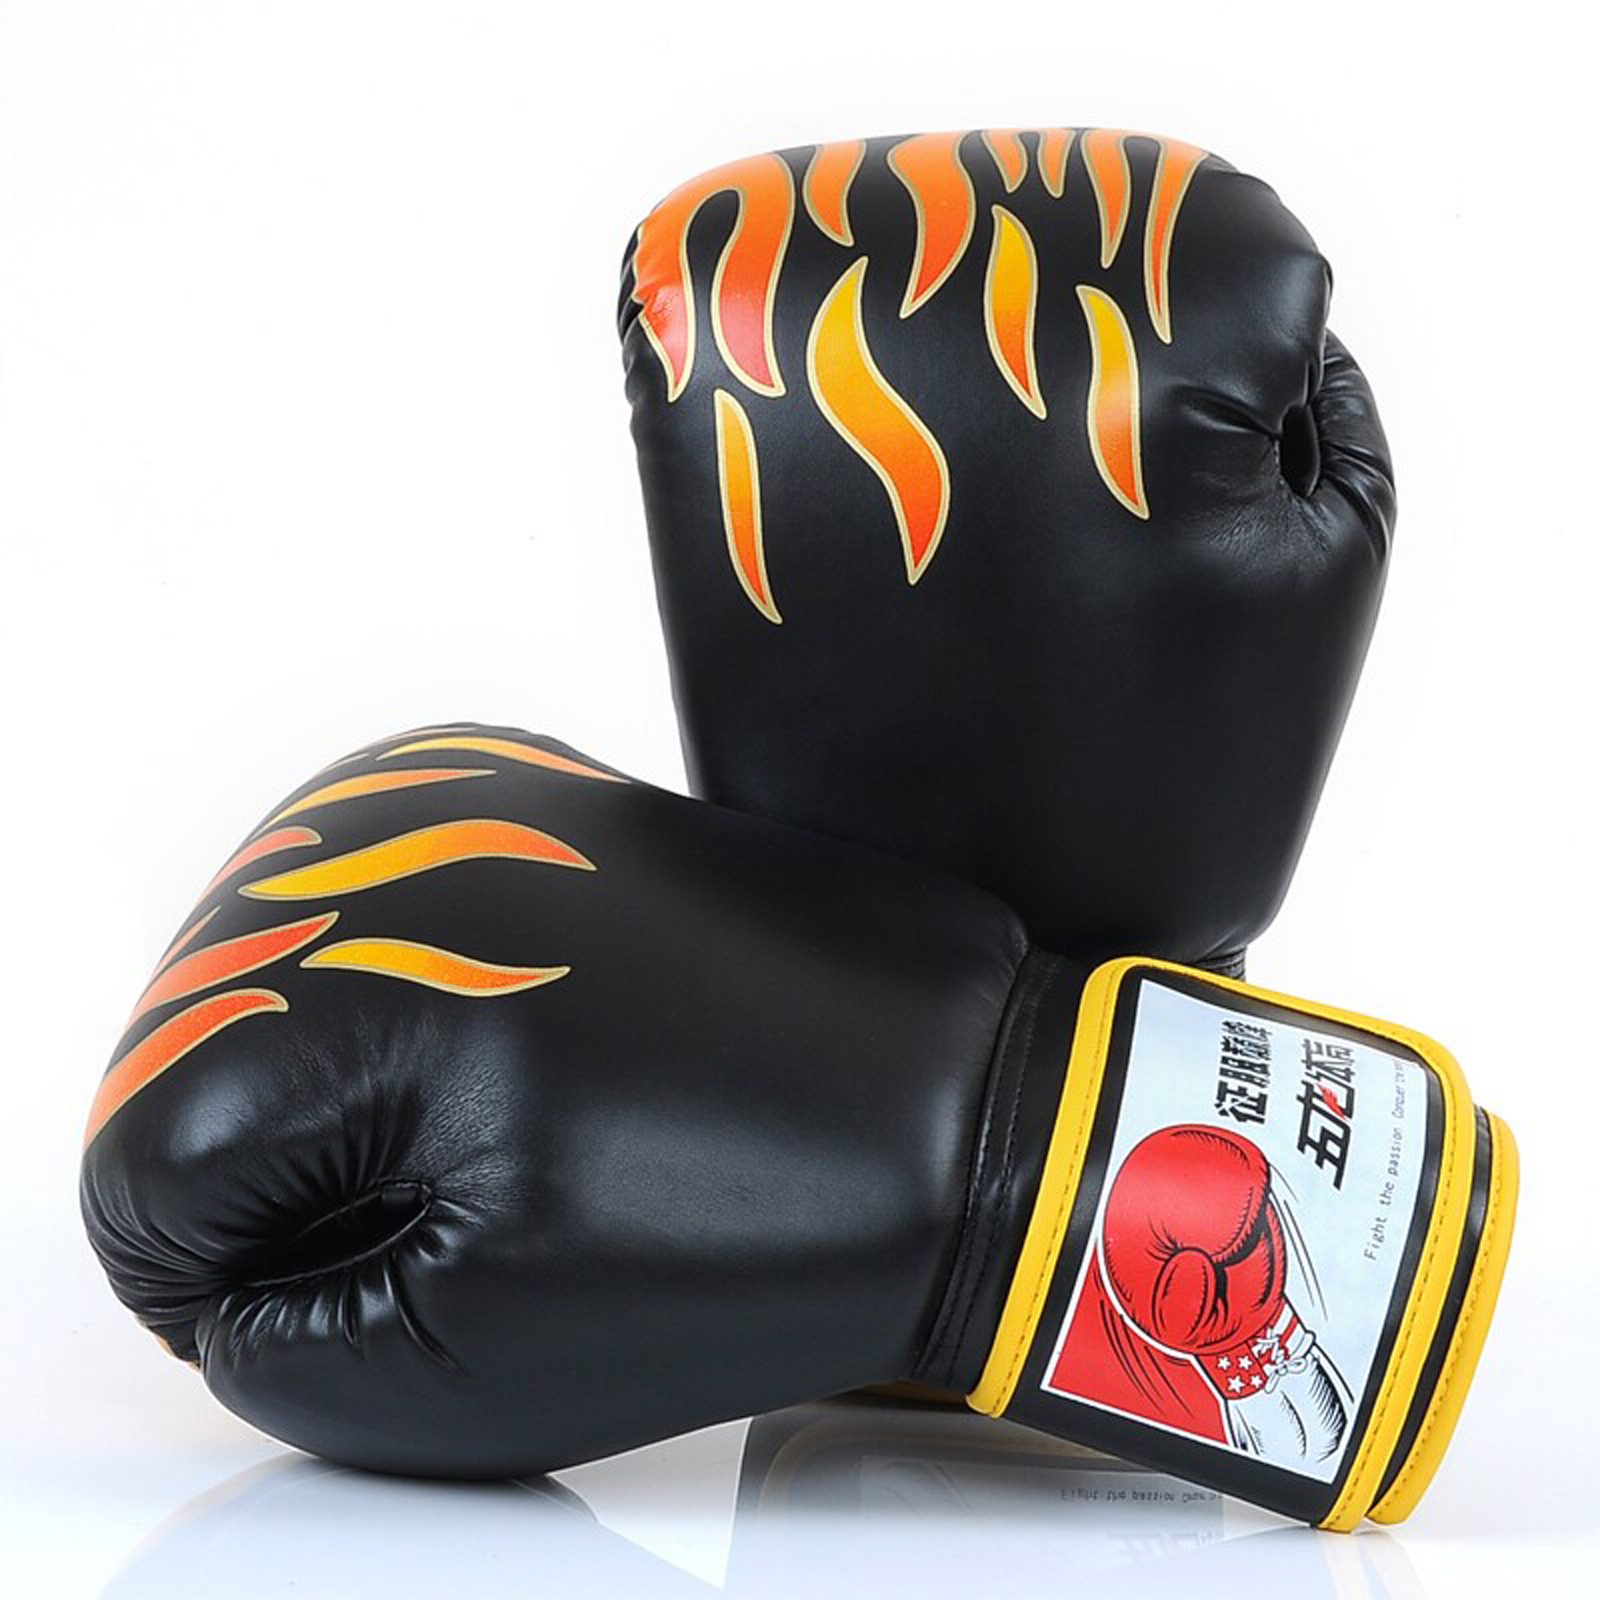 Cheerwing 14oz Boxing Gloves MMA UFC Sparring Fight Punch Mitts Leather Training Gloves